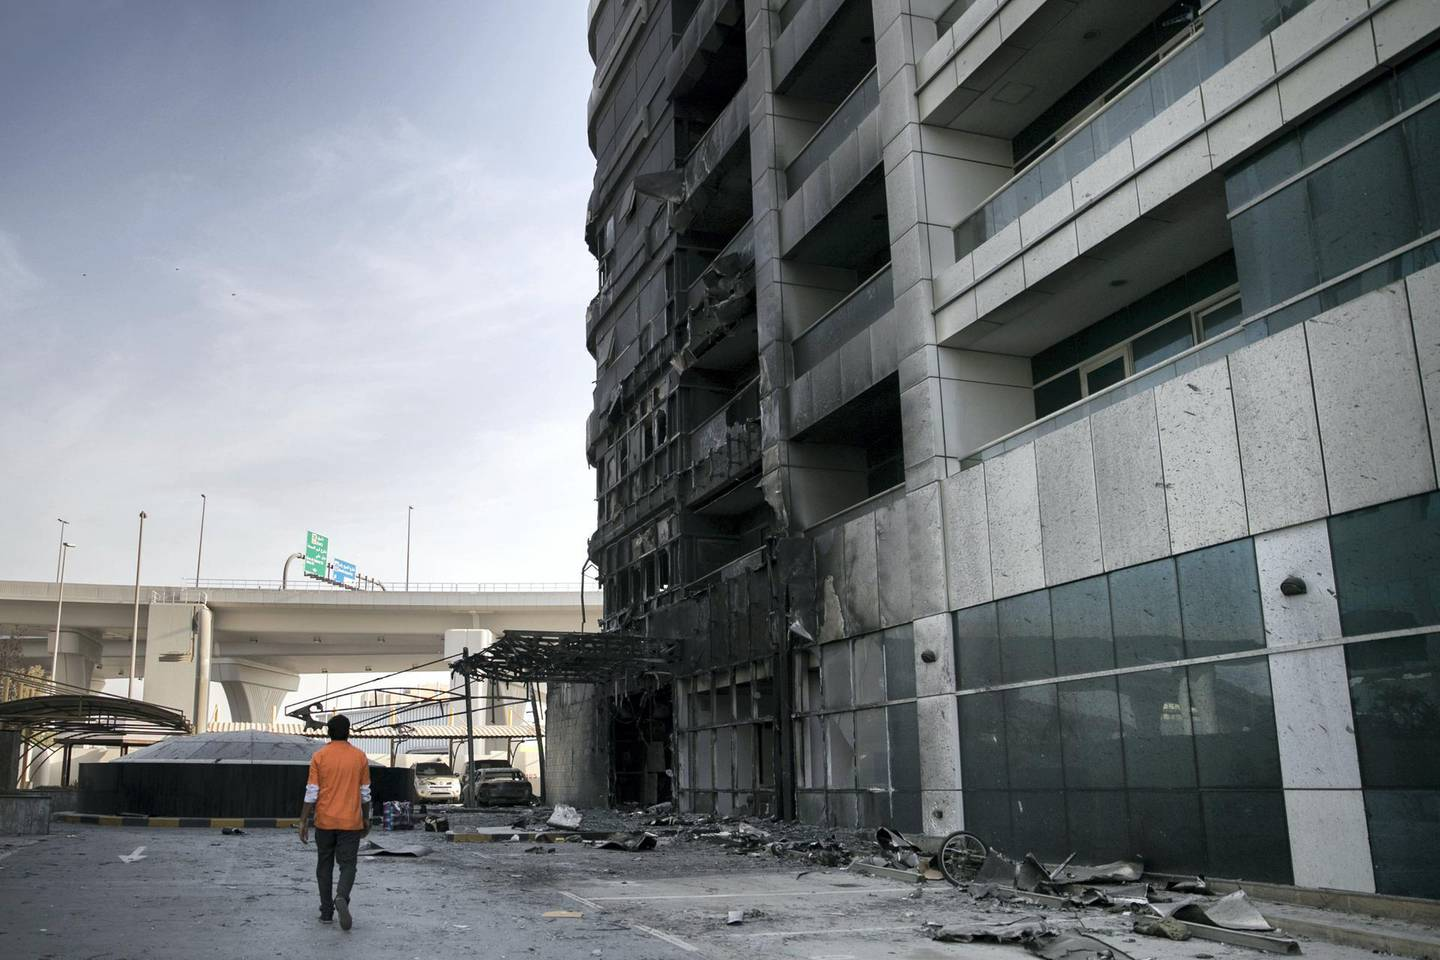 DUBAI, UNITED ARAB EMIRATES - MAY 28, 2018. Aftermath of Zen tower fire.The blaze forced more than 100 residents to flee the Dubai Marina tower and left the building badly damaged. It began in the kitchen of a business on the ground floor, investigators believe.(Photo by Reem Mohammed/The National)Reporter: Section: NA